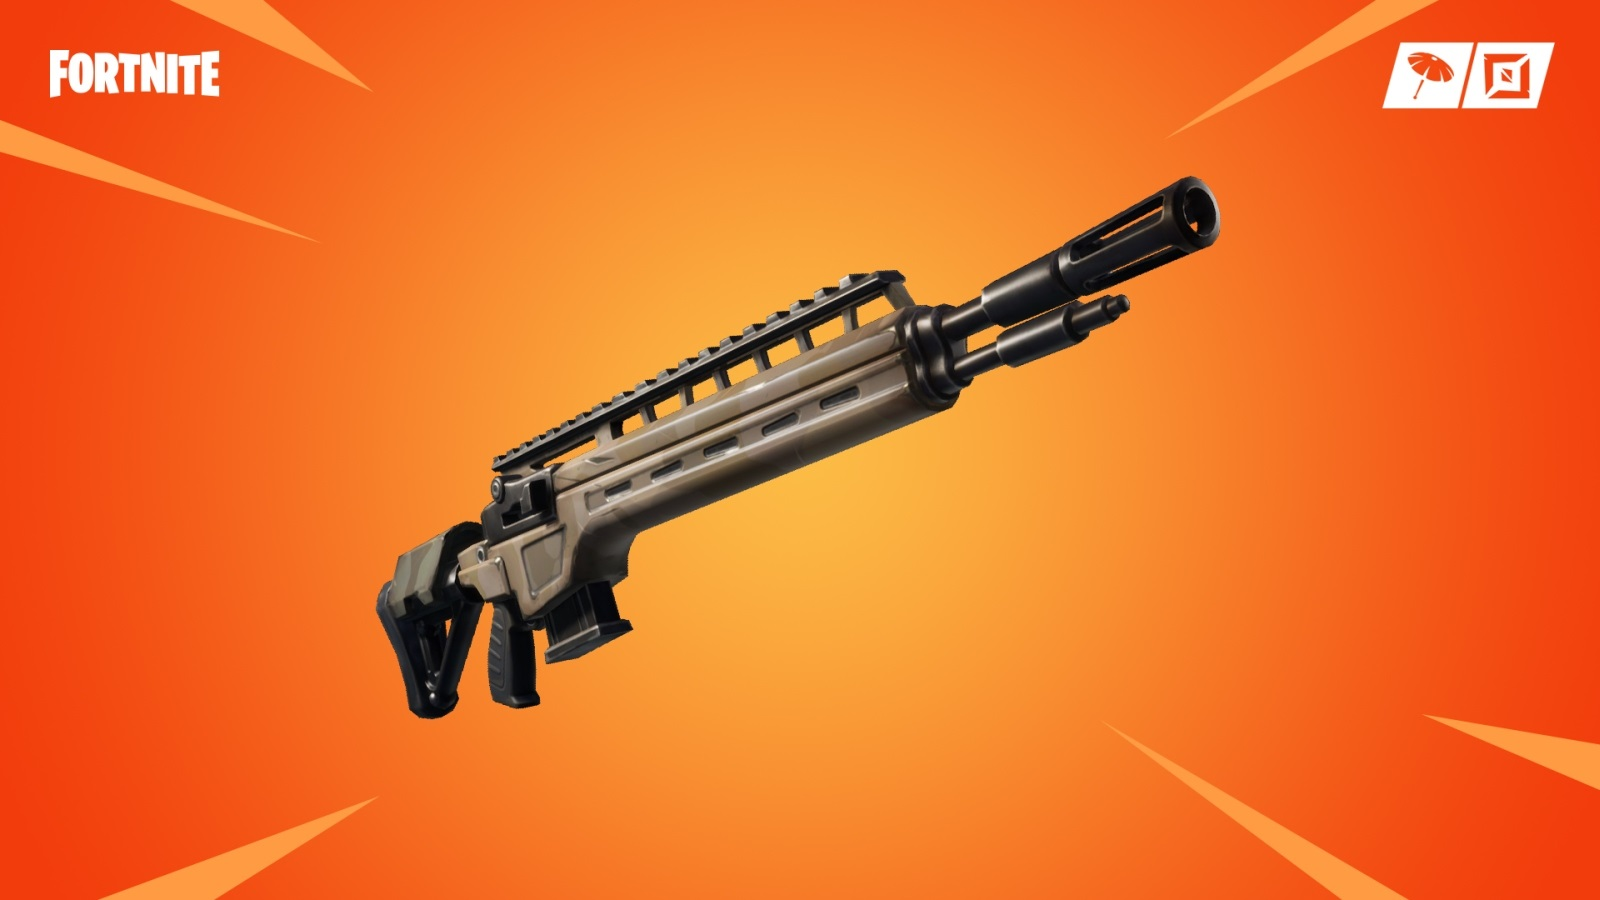 Fortnite; screenshot: rifle